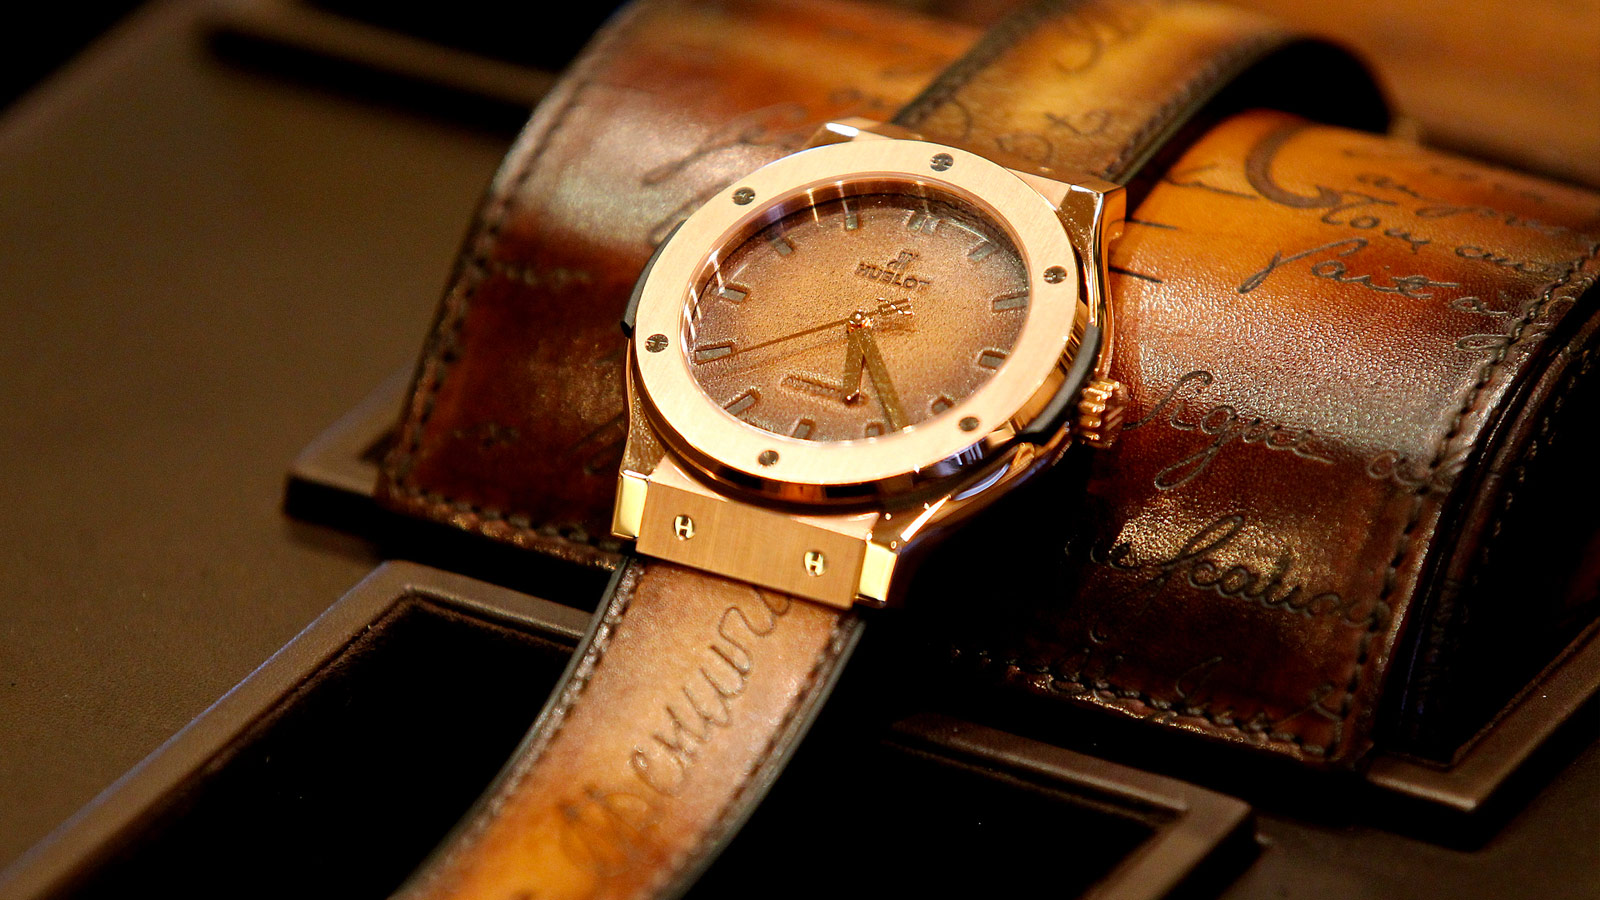 Brown Straps Copy Hublot Classic Fusion Watches